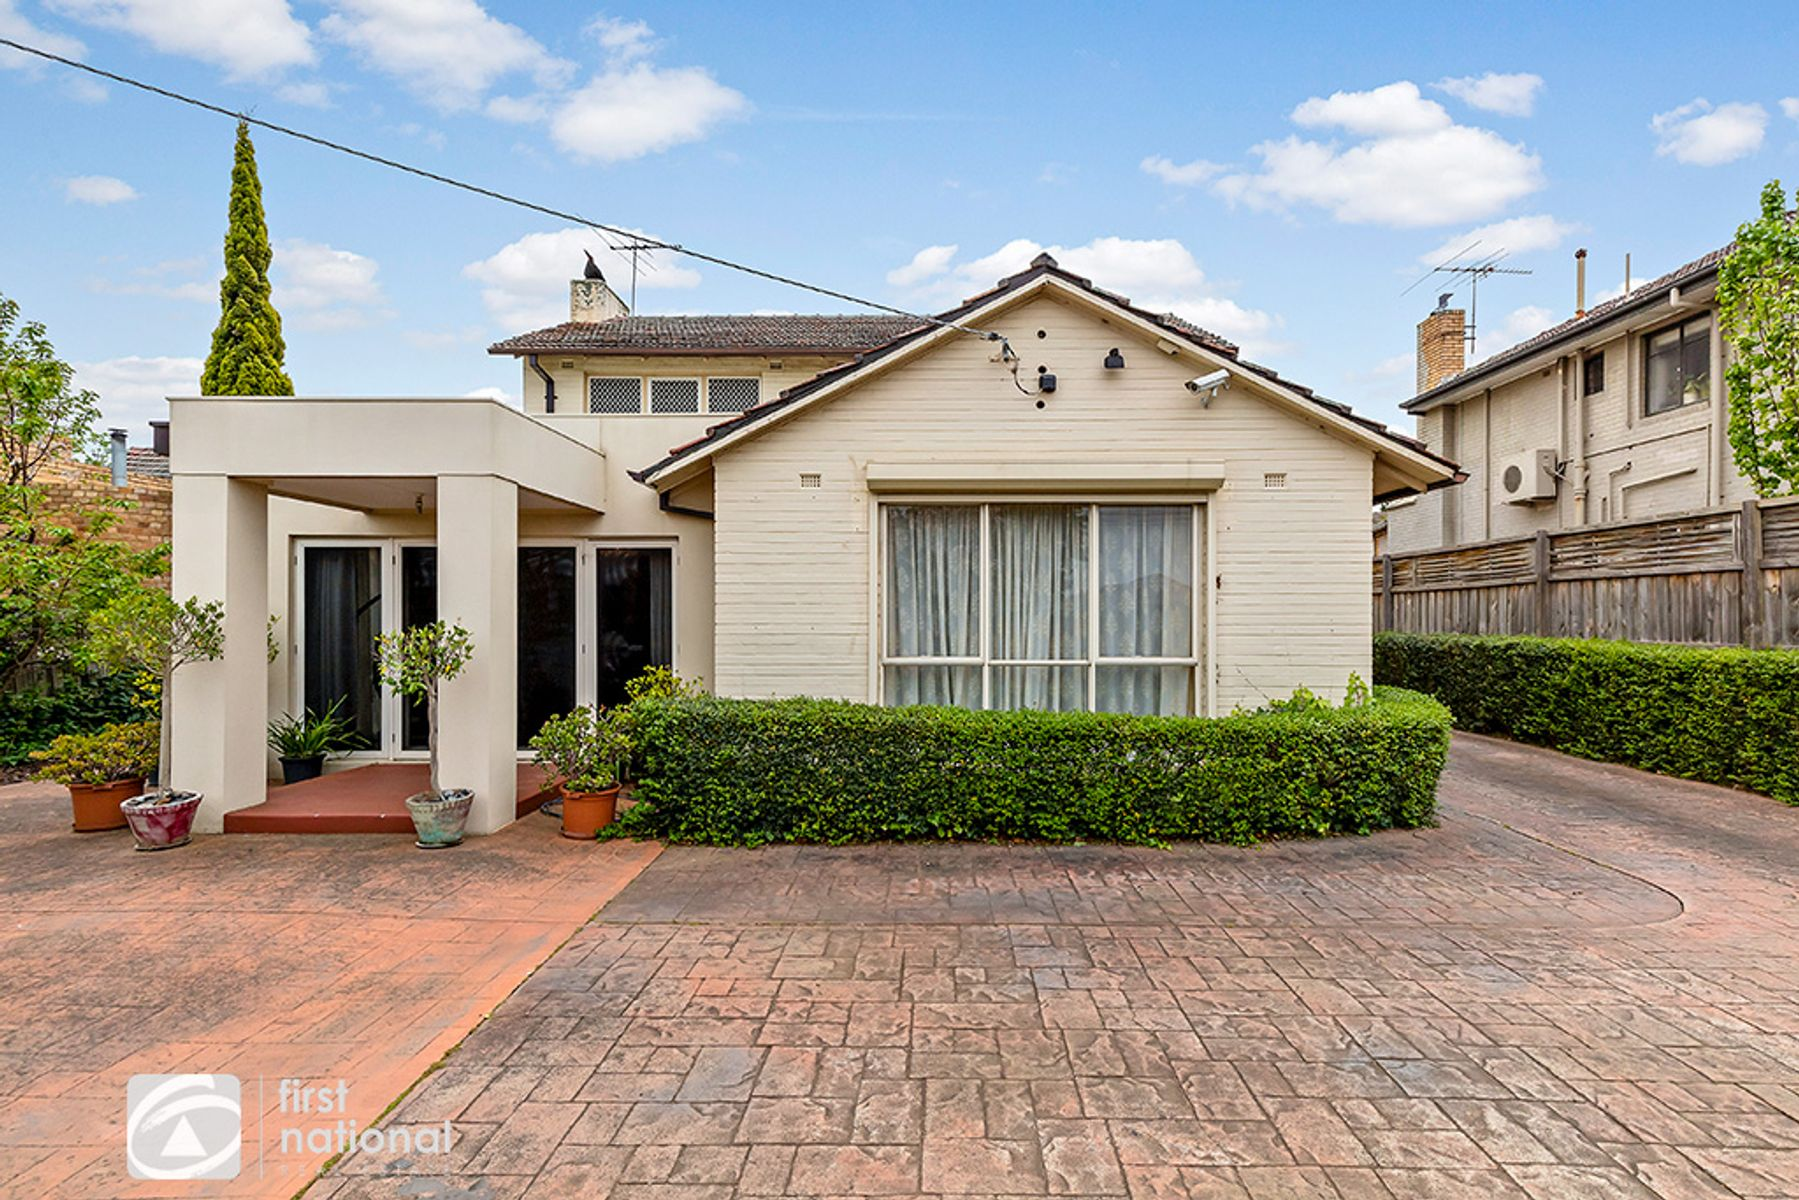 149 Doncaster Road, Balwyn North, VIC 3104